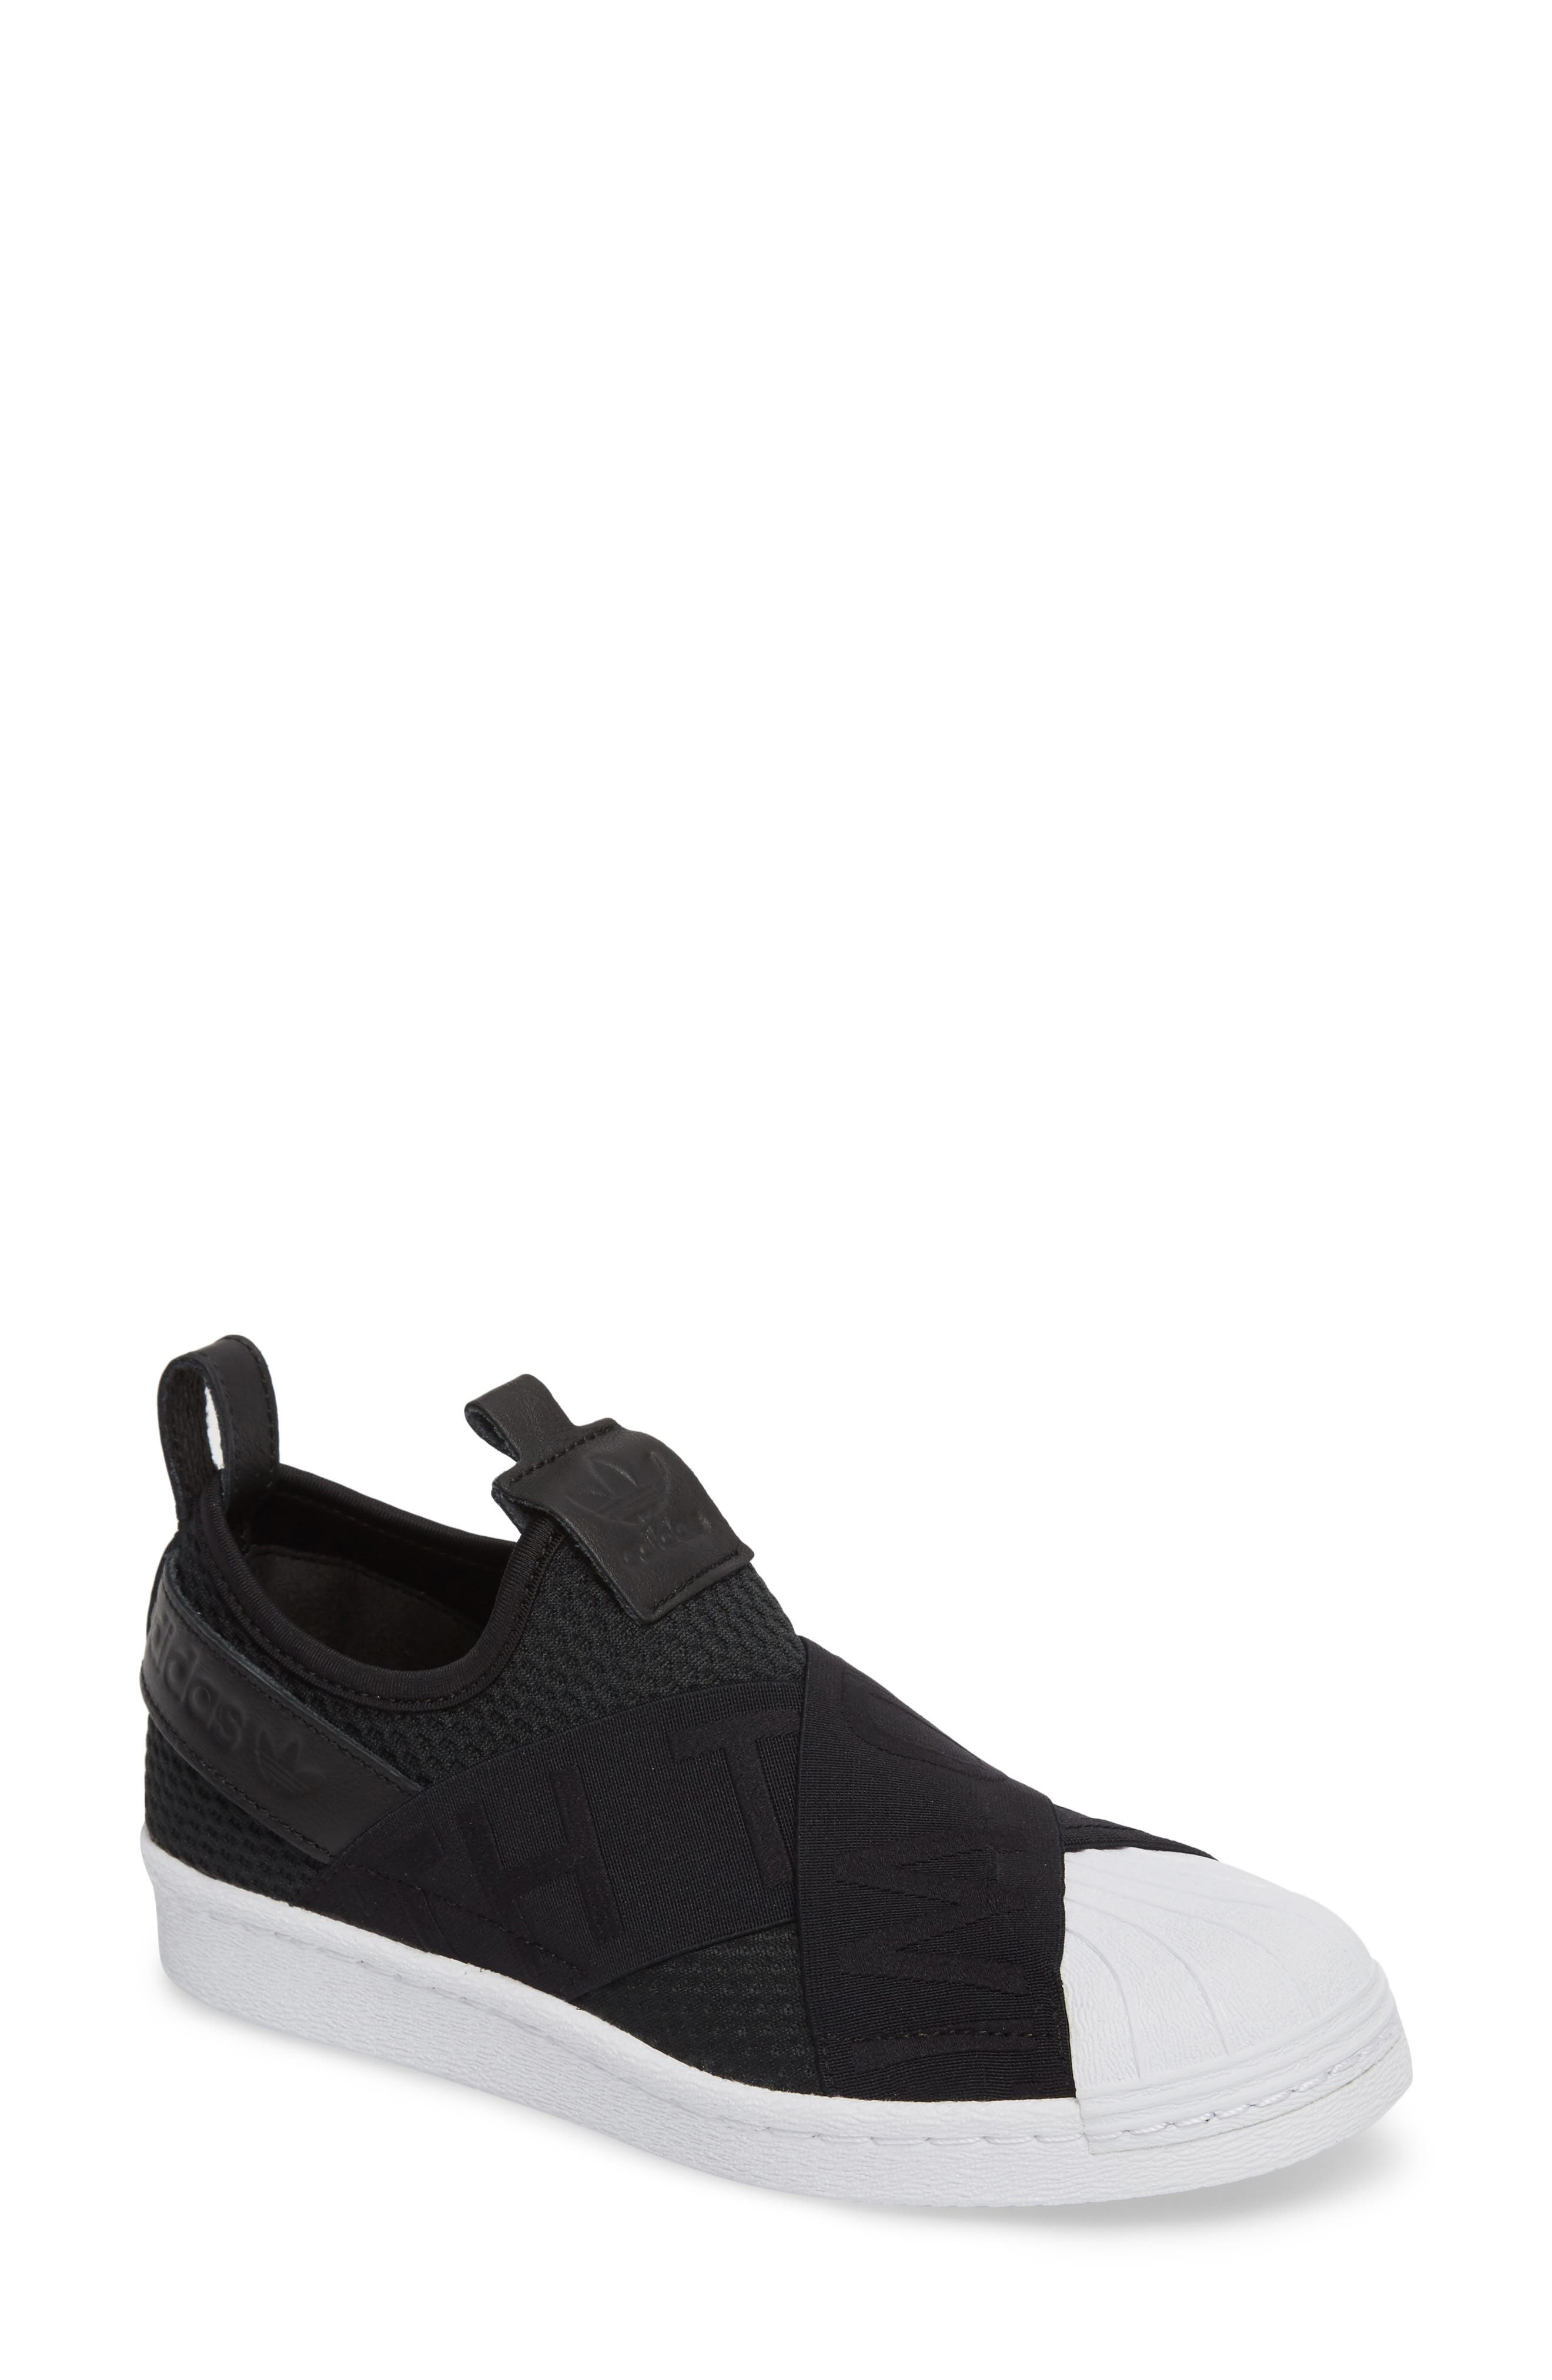 Superstar Slip-On Sneaker,                         Main,                         color, 003